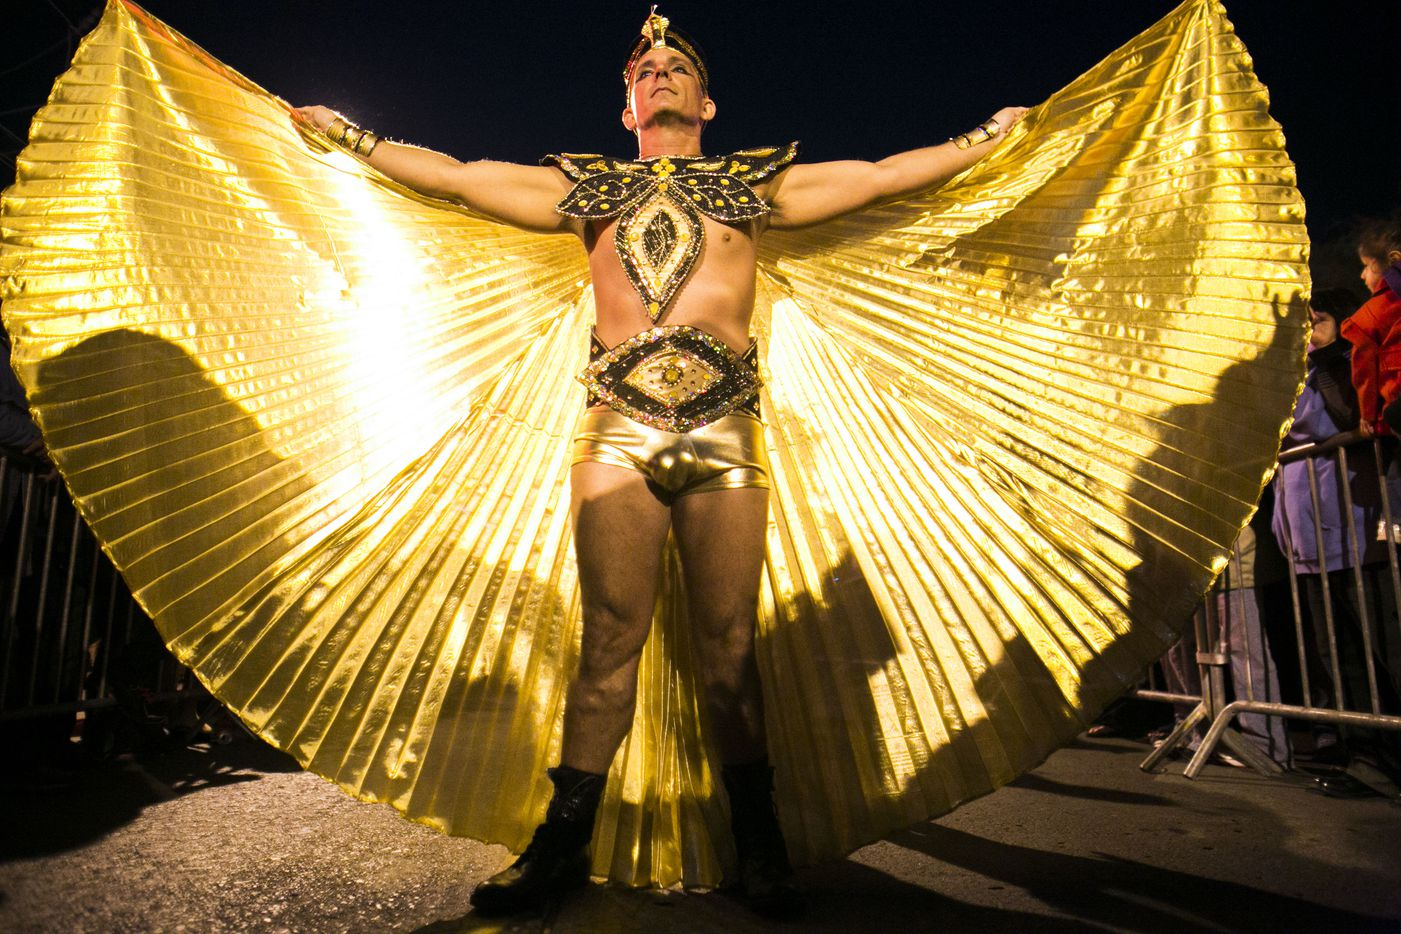 An egyptian themed costumer spreads his wings for the crowd on the 3900 block of Cedar Springs Road  for the Oak Lawn Halloween Street Party in Dallas on Saturday Oct. 27, 2012. (Christian Randolph/The Dallas Morning News)